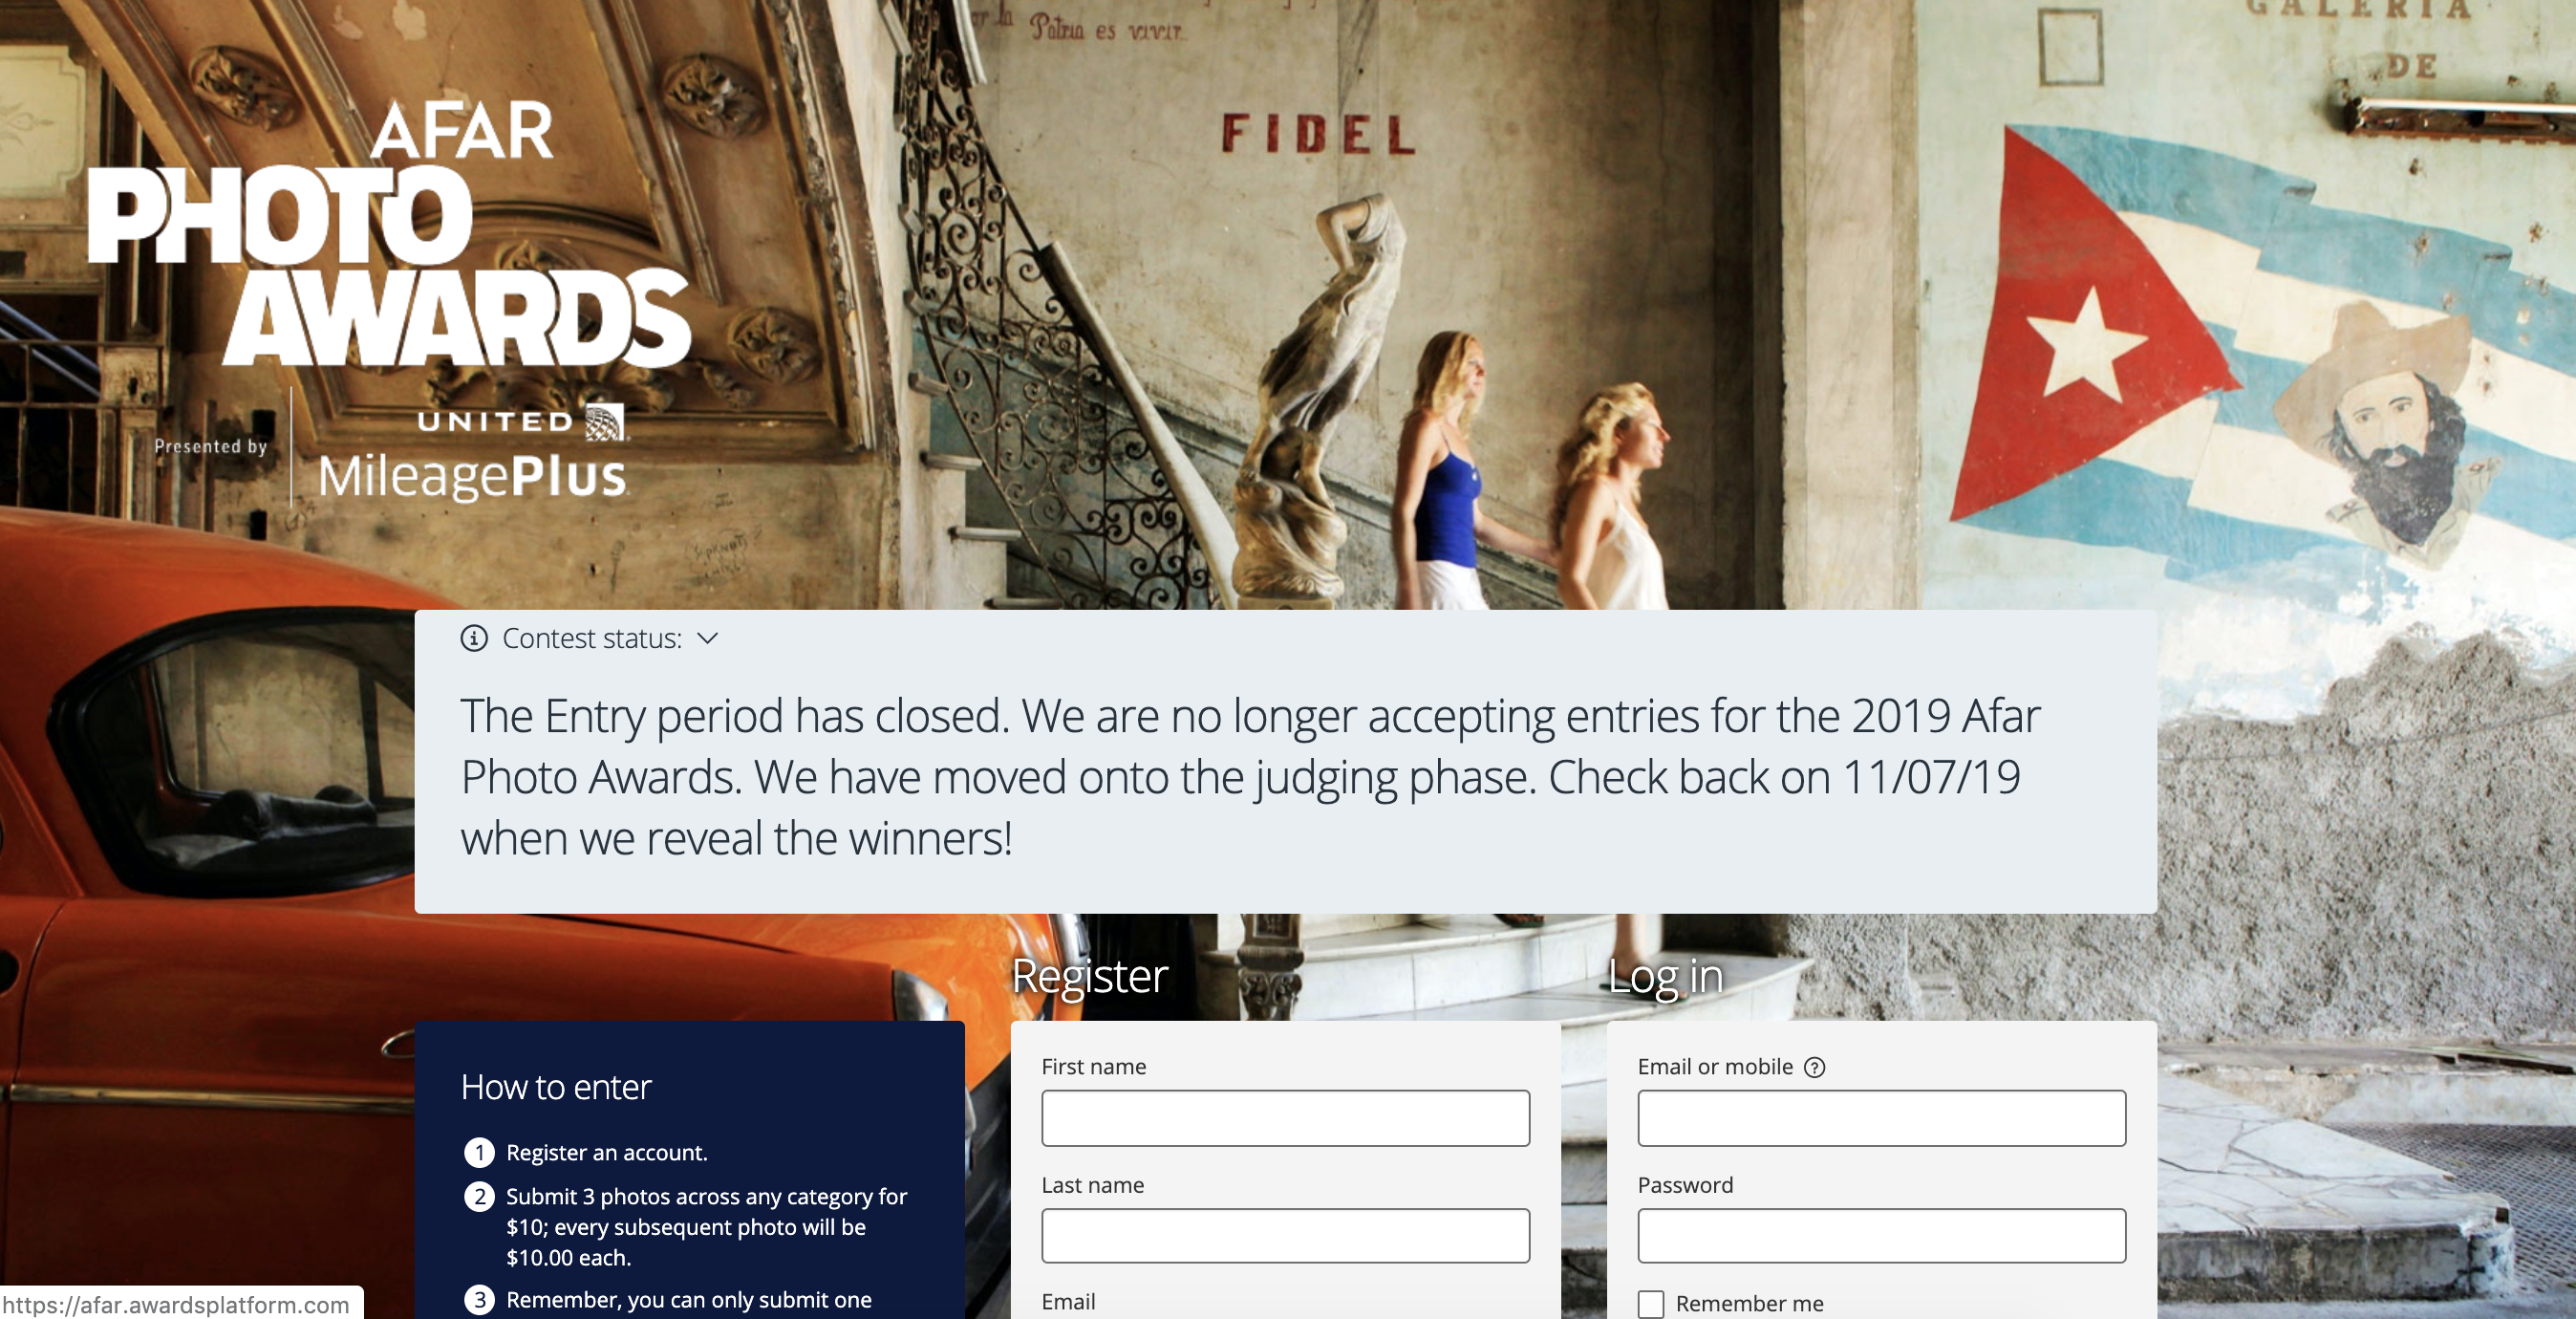 A far photo awards registration page